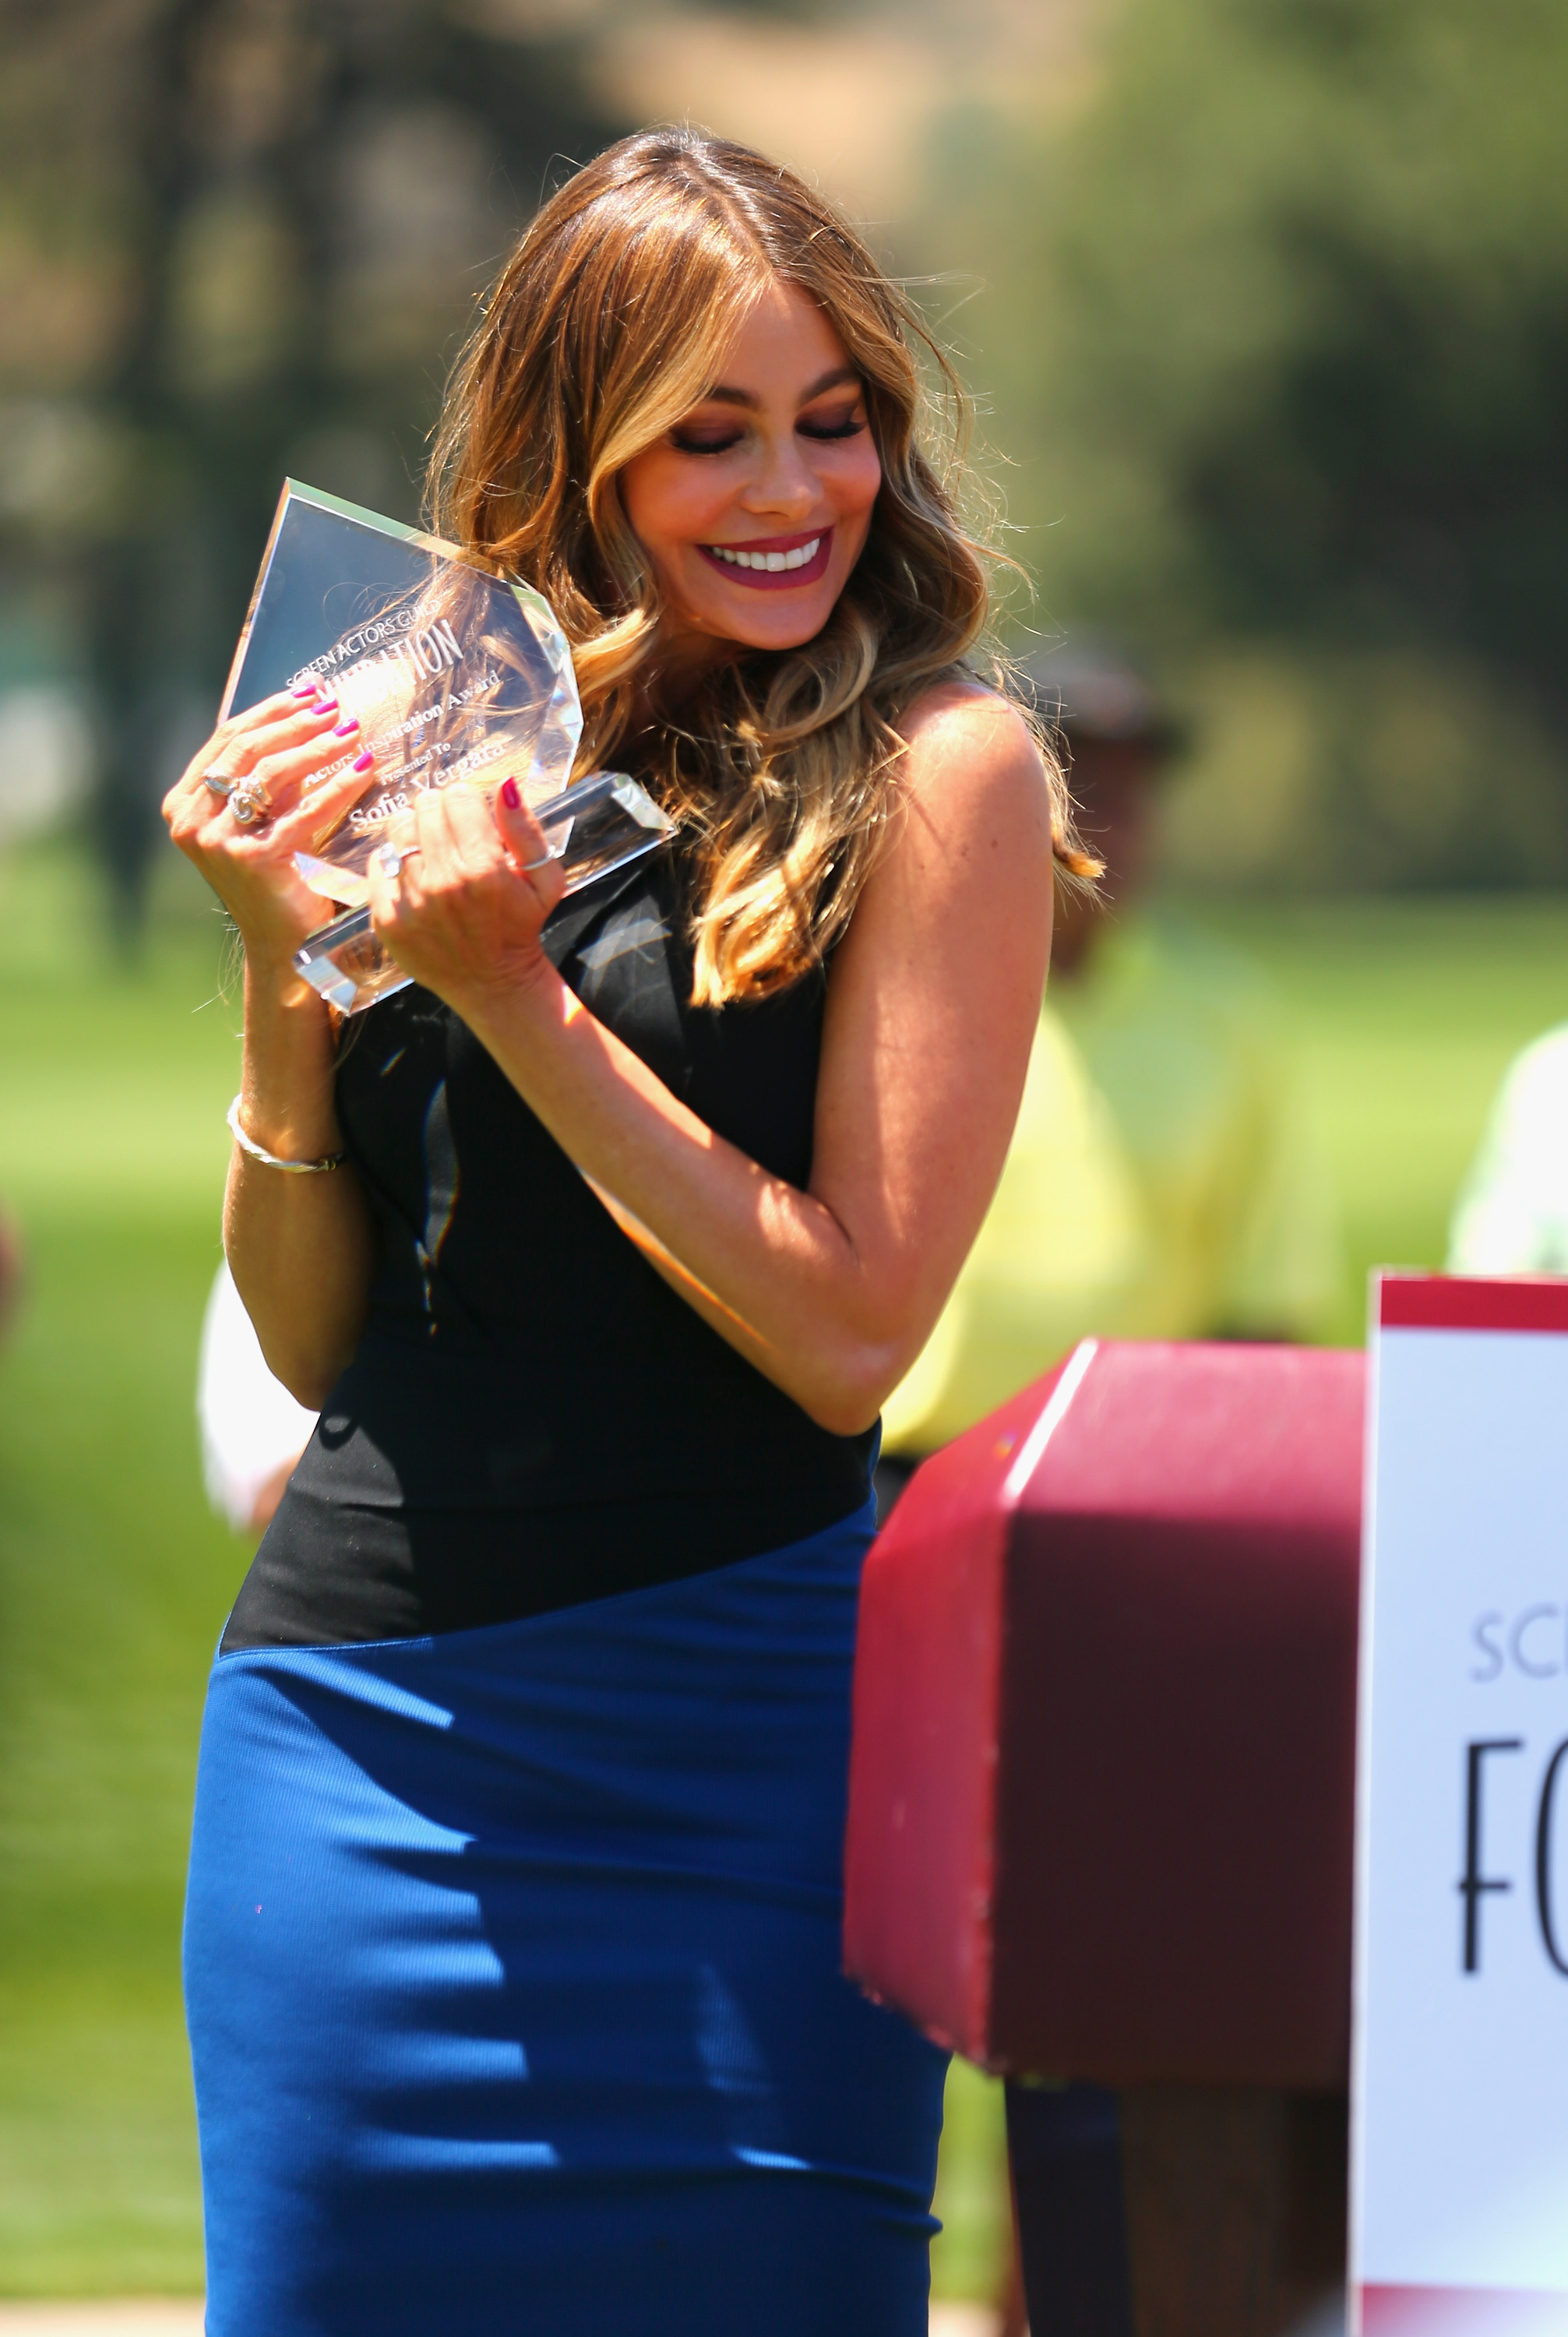 Honoree Sofia Vergara accepts the Inaugural Actors Inspiration Award at the Screen Actors Guild Foundation's 6th Annual Los Angeles Golf Classic on June 8, 2015 in Burbank, California.  (Photo by Mark Davis/Getty Images for The Screen Actors Guild Foundation)